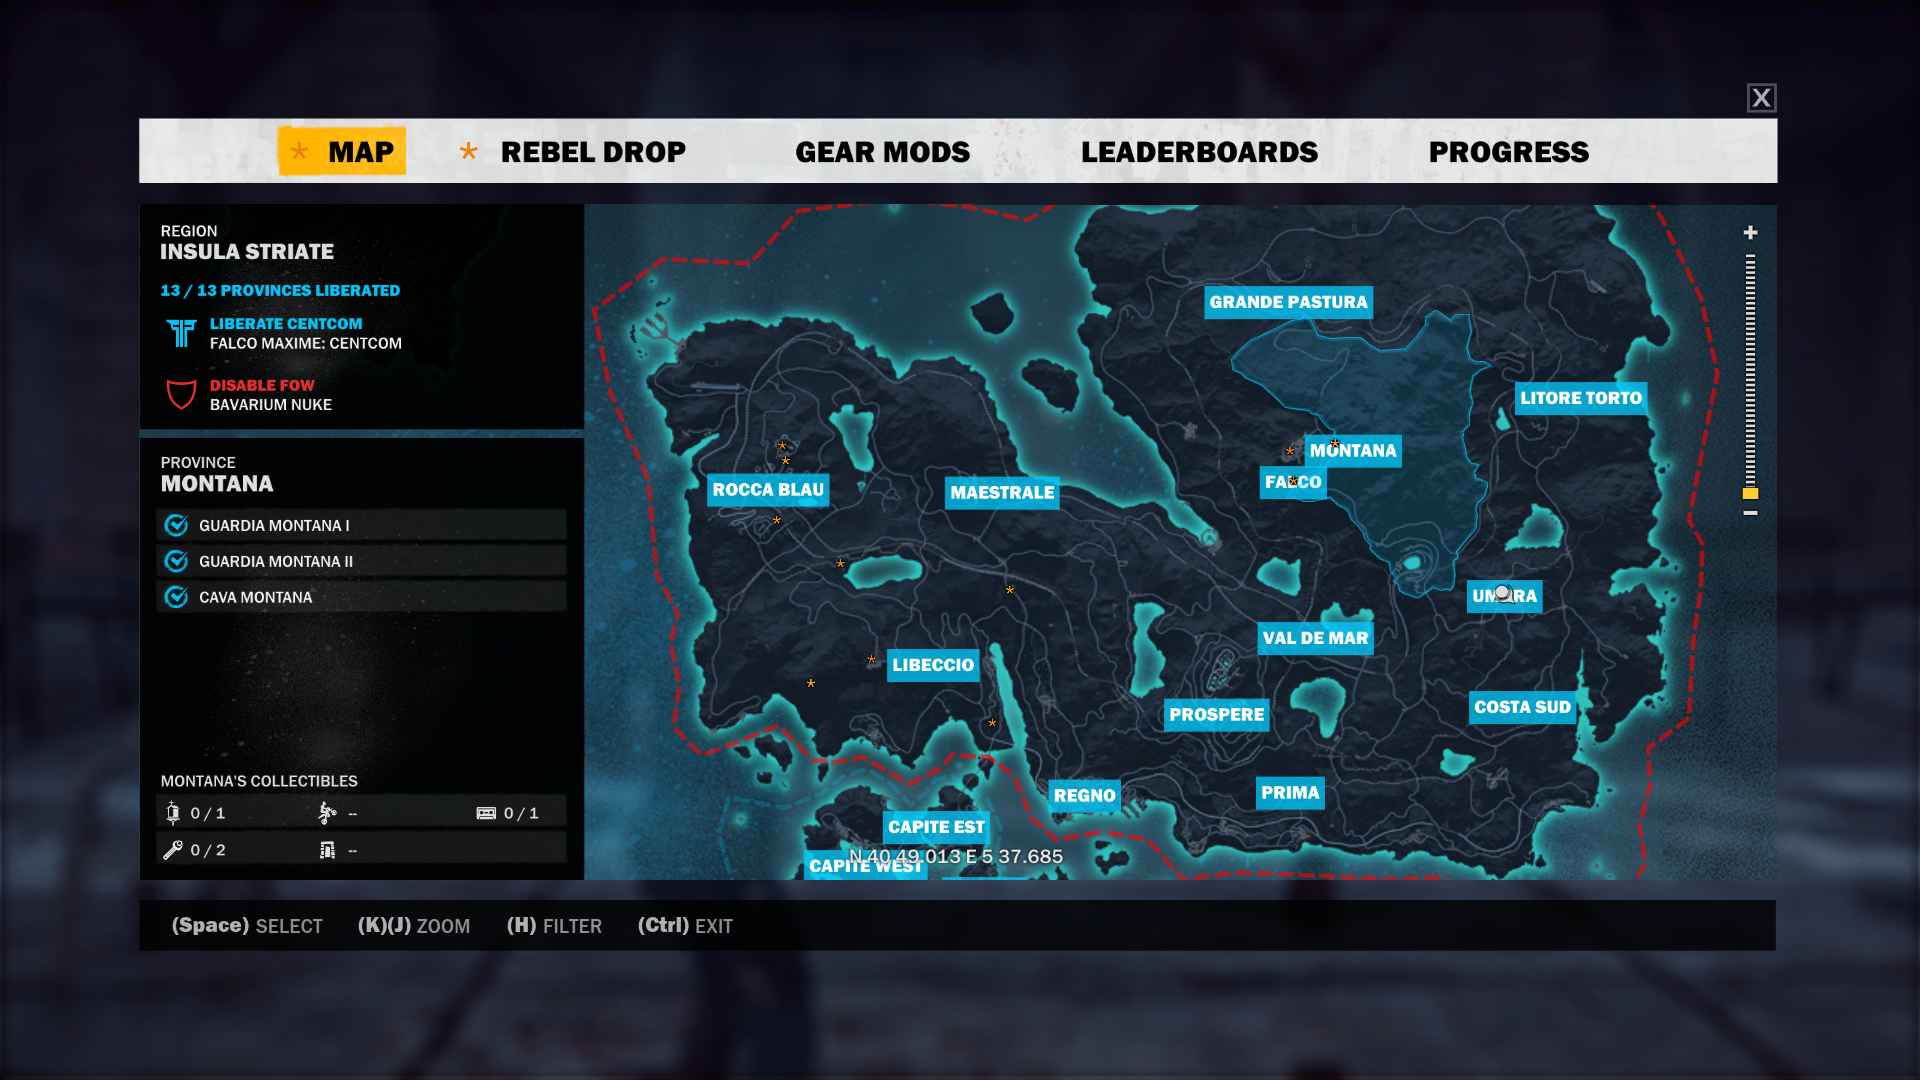 All Locations + Gear Mods Before 4th Mission (NO DLC)